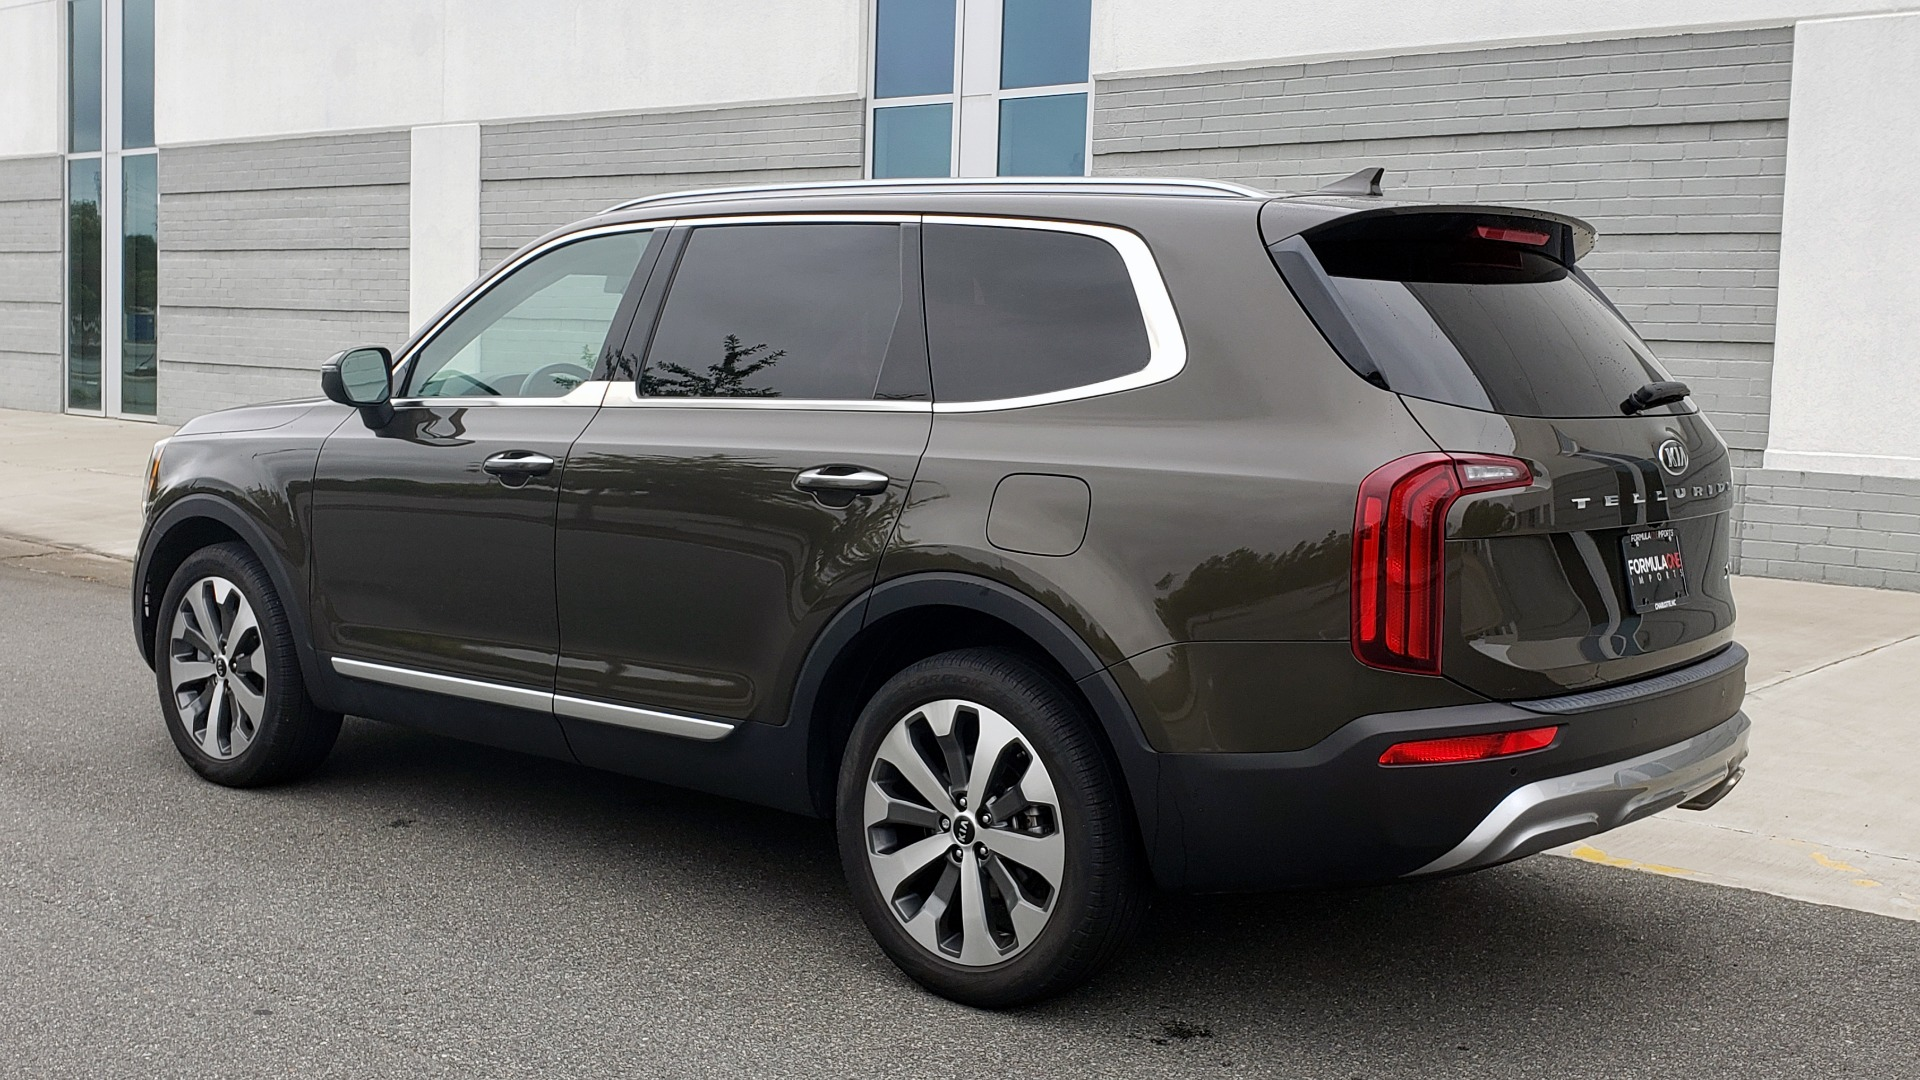 Used 2020 Kia TELLURIDE S 3.8L / FWD / 8-SPD AUTO / SUNROOF / REARVIEW / 20INCH WHEELS for sale $41,595 at Formula Imports in Charlotte NC 28227 5